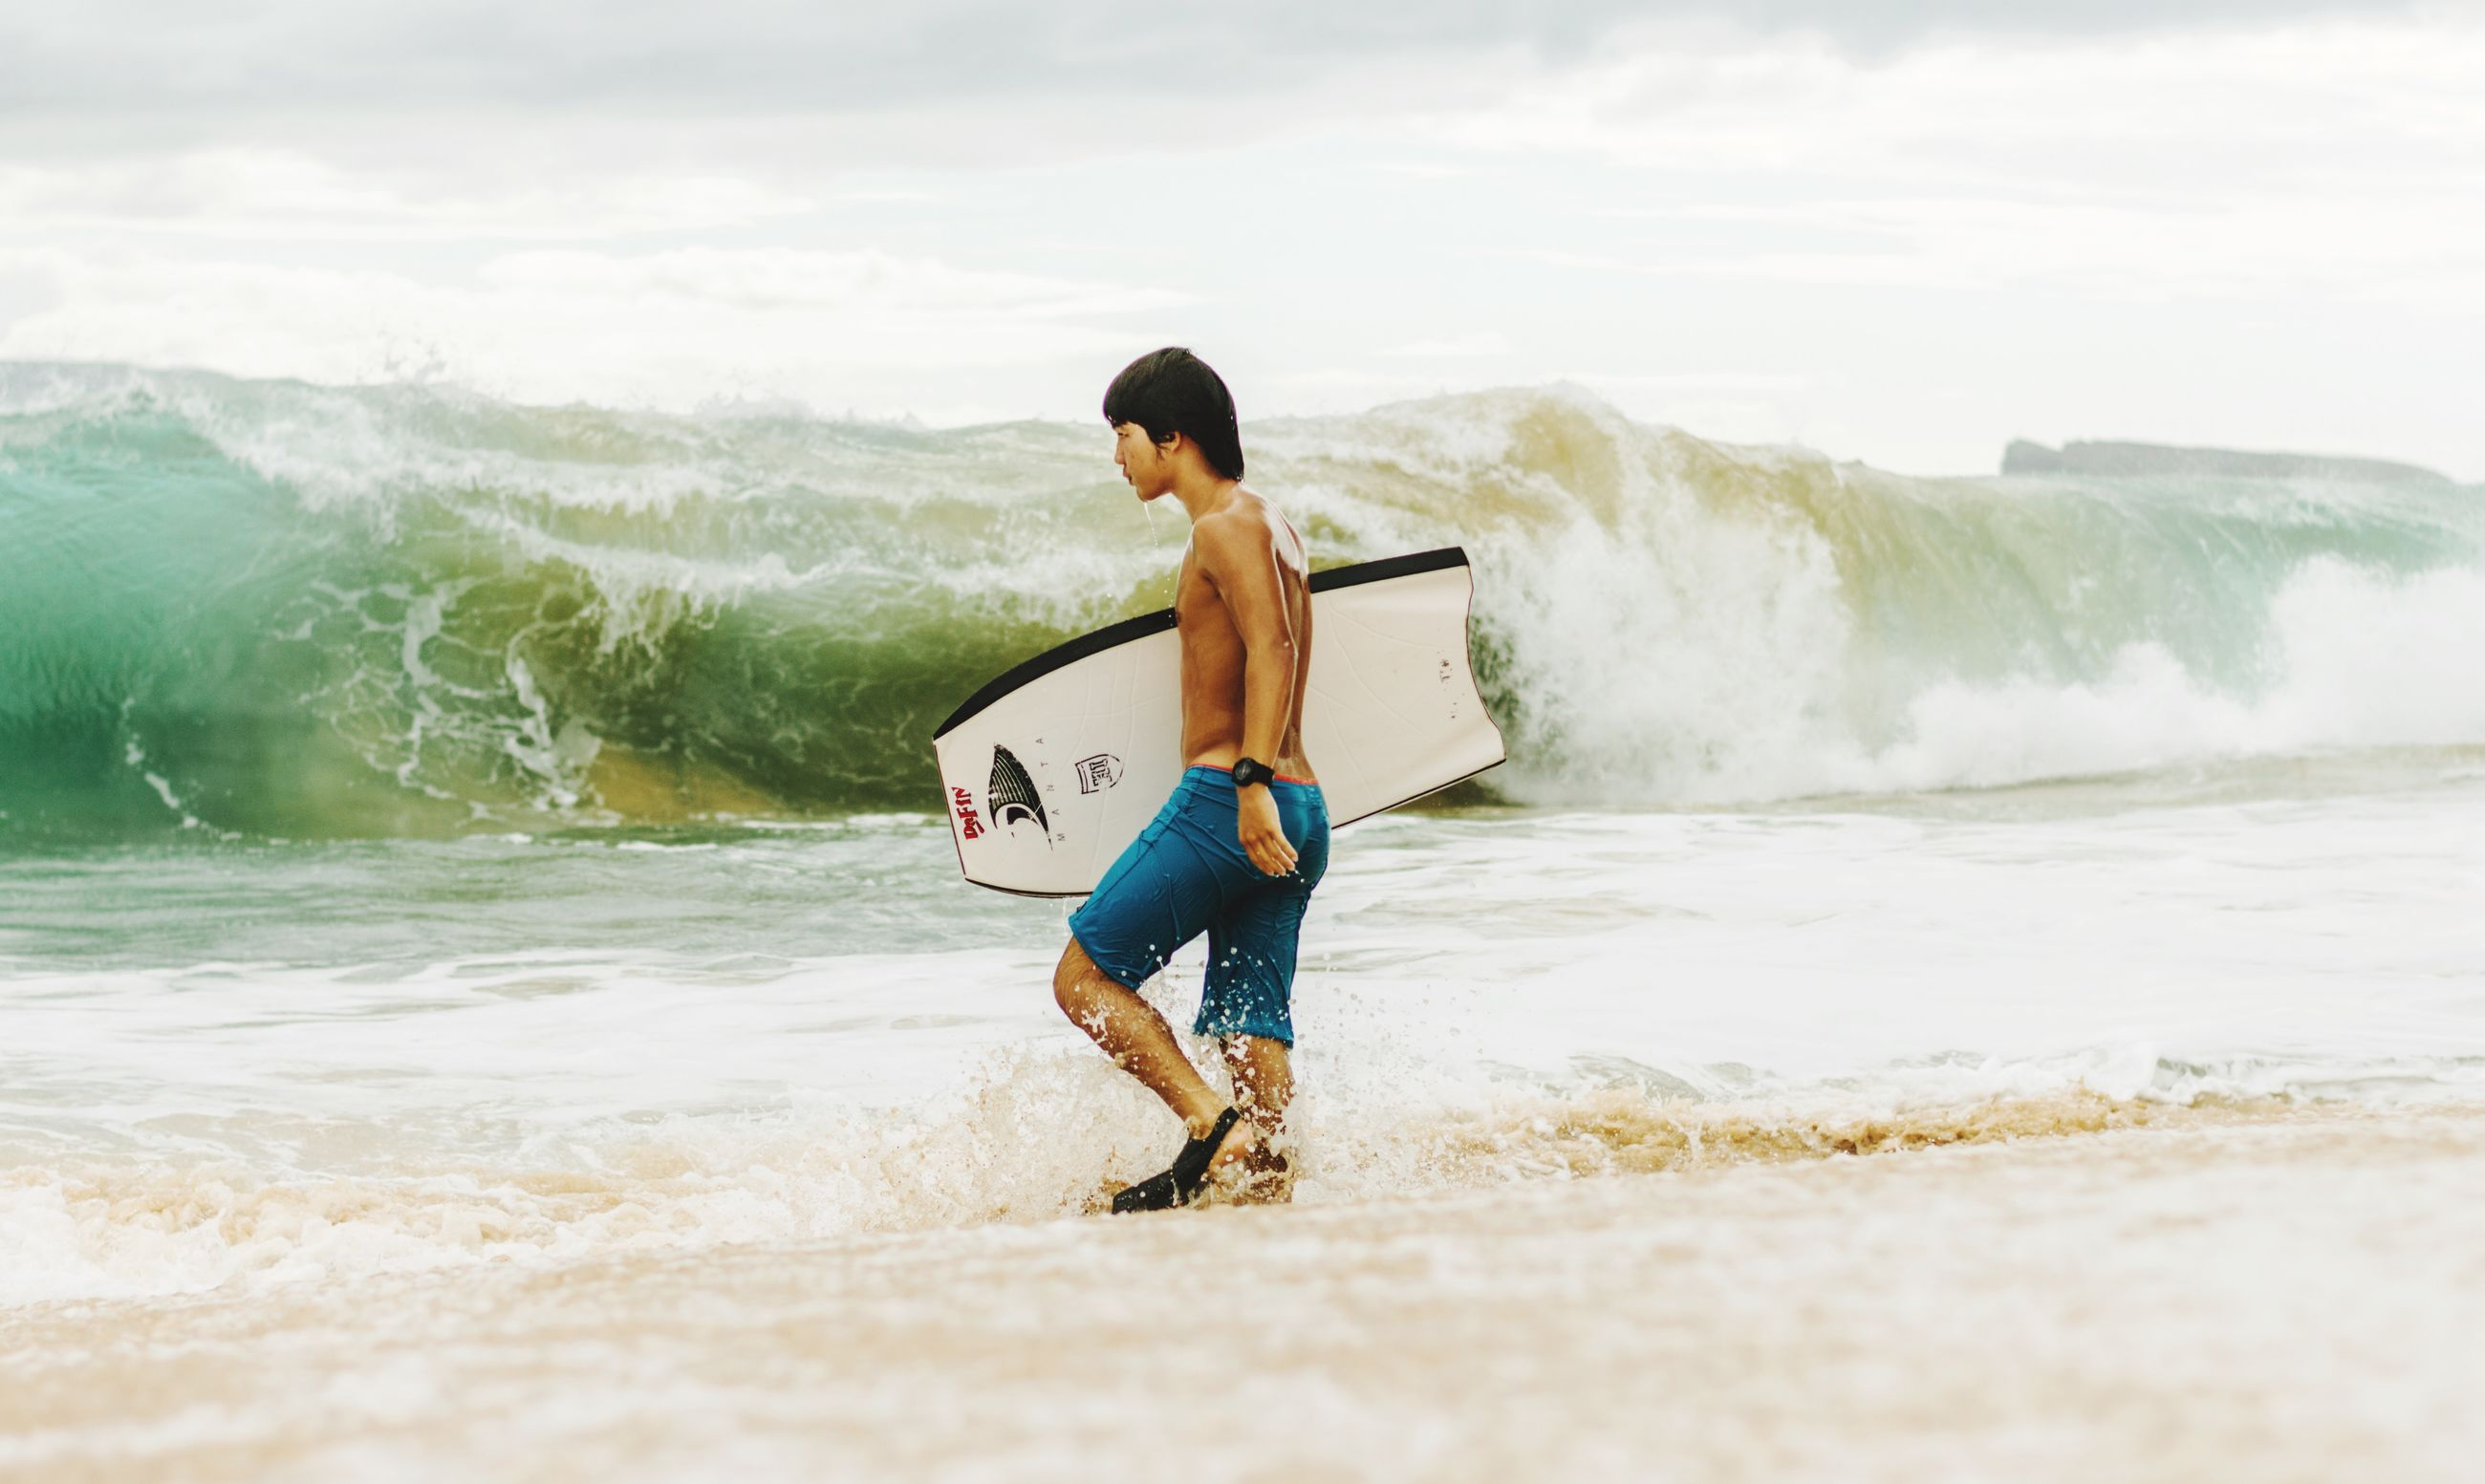 water, full length, leisure activity, lifestyles, sea, beach, vacations, casual clothing, sky, person, shore, wave, motion, enjoyment, shirtless, young men, boys, sand